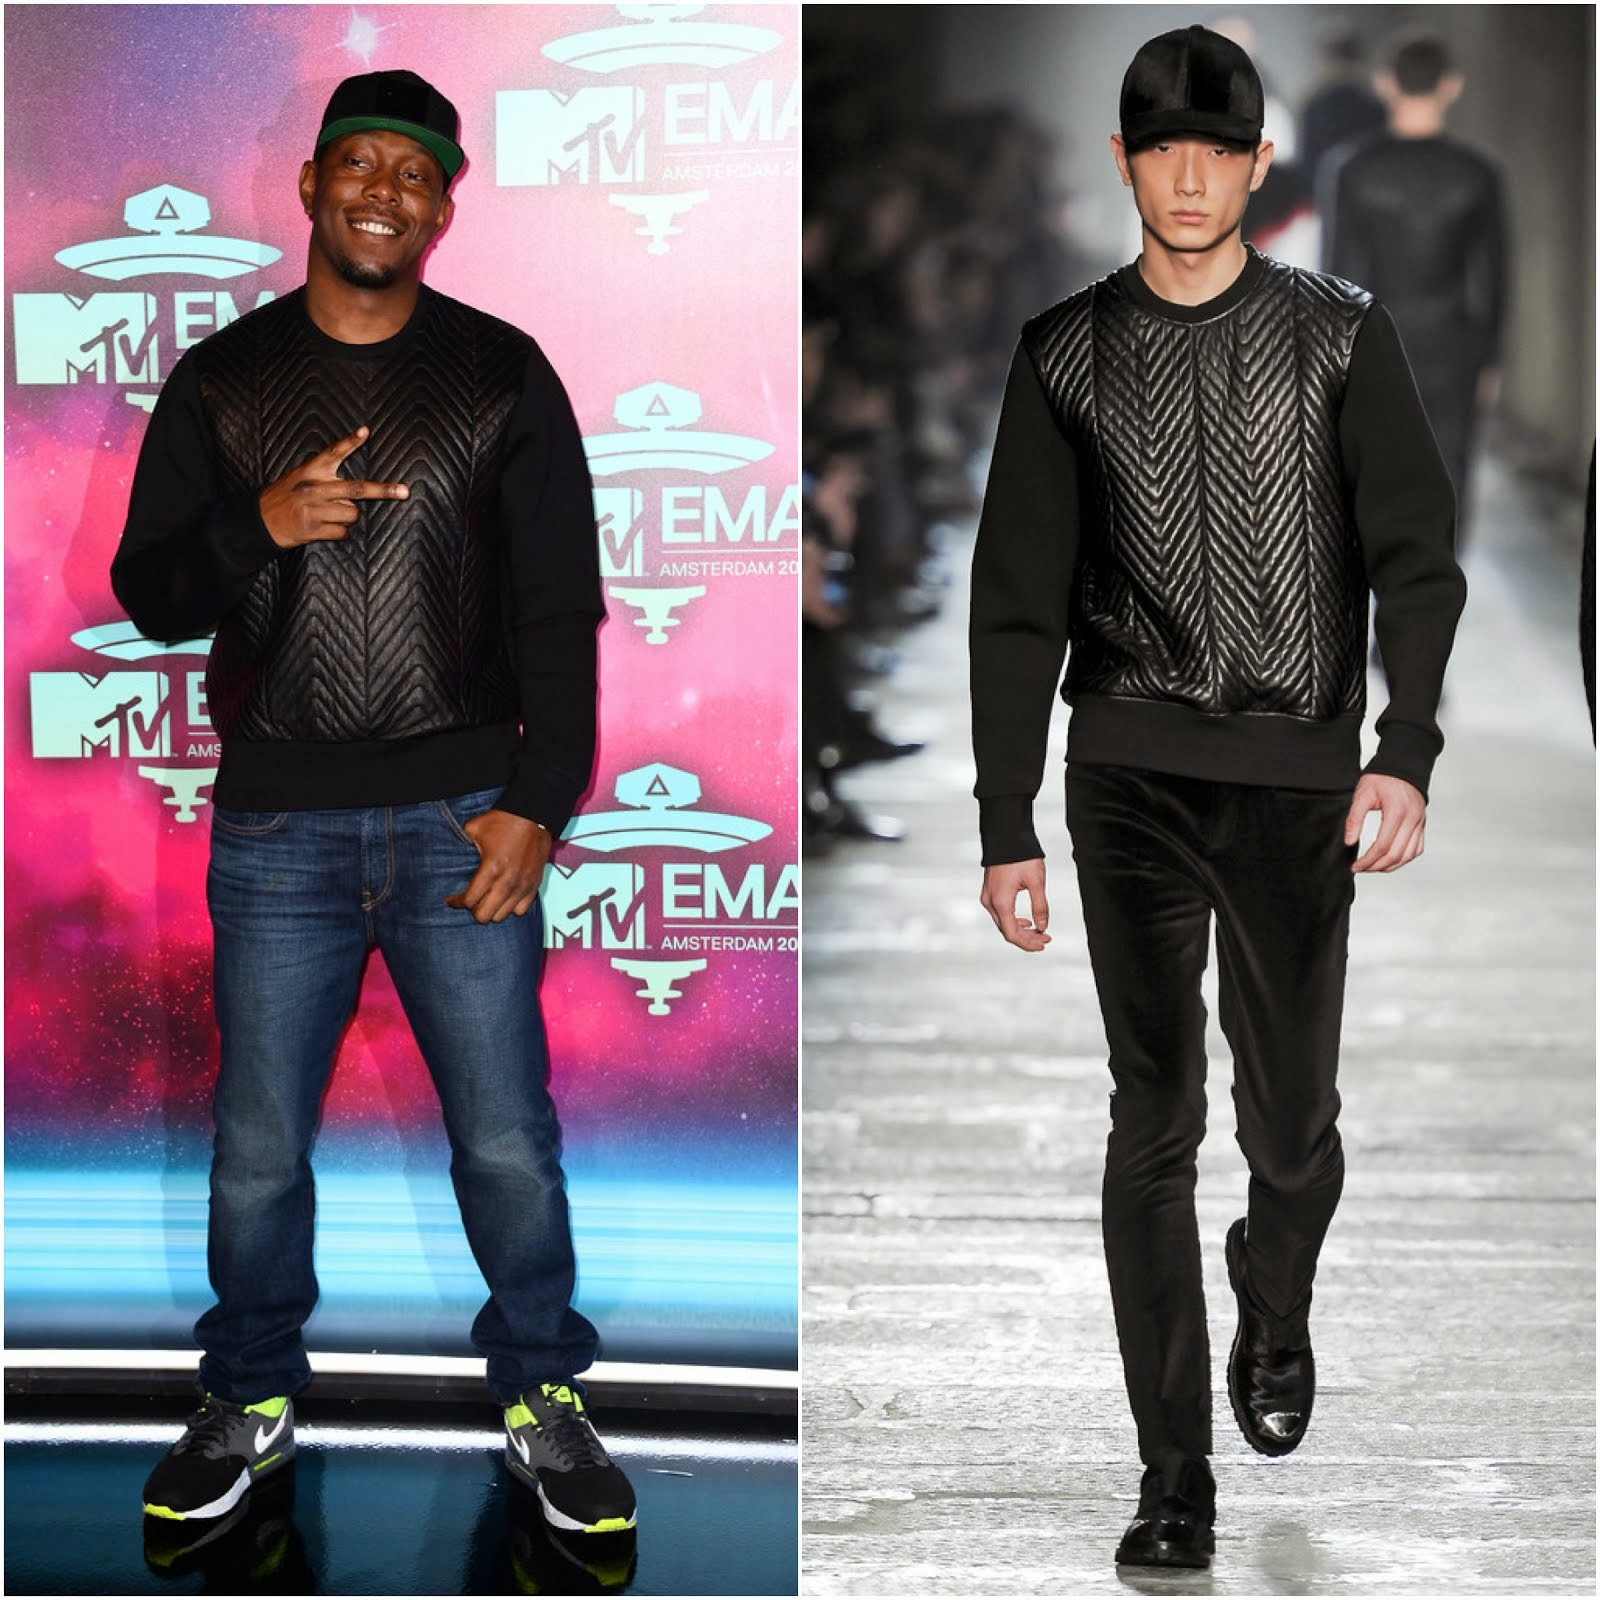 Dizzee Rascal in Neil Barrett woven leather neoprene sweatshirt - MTV EMA's 2013